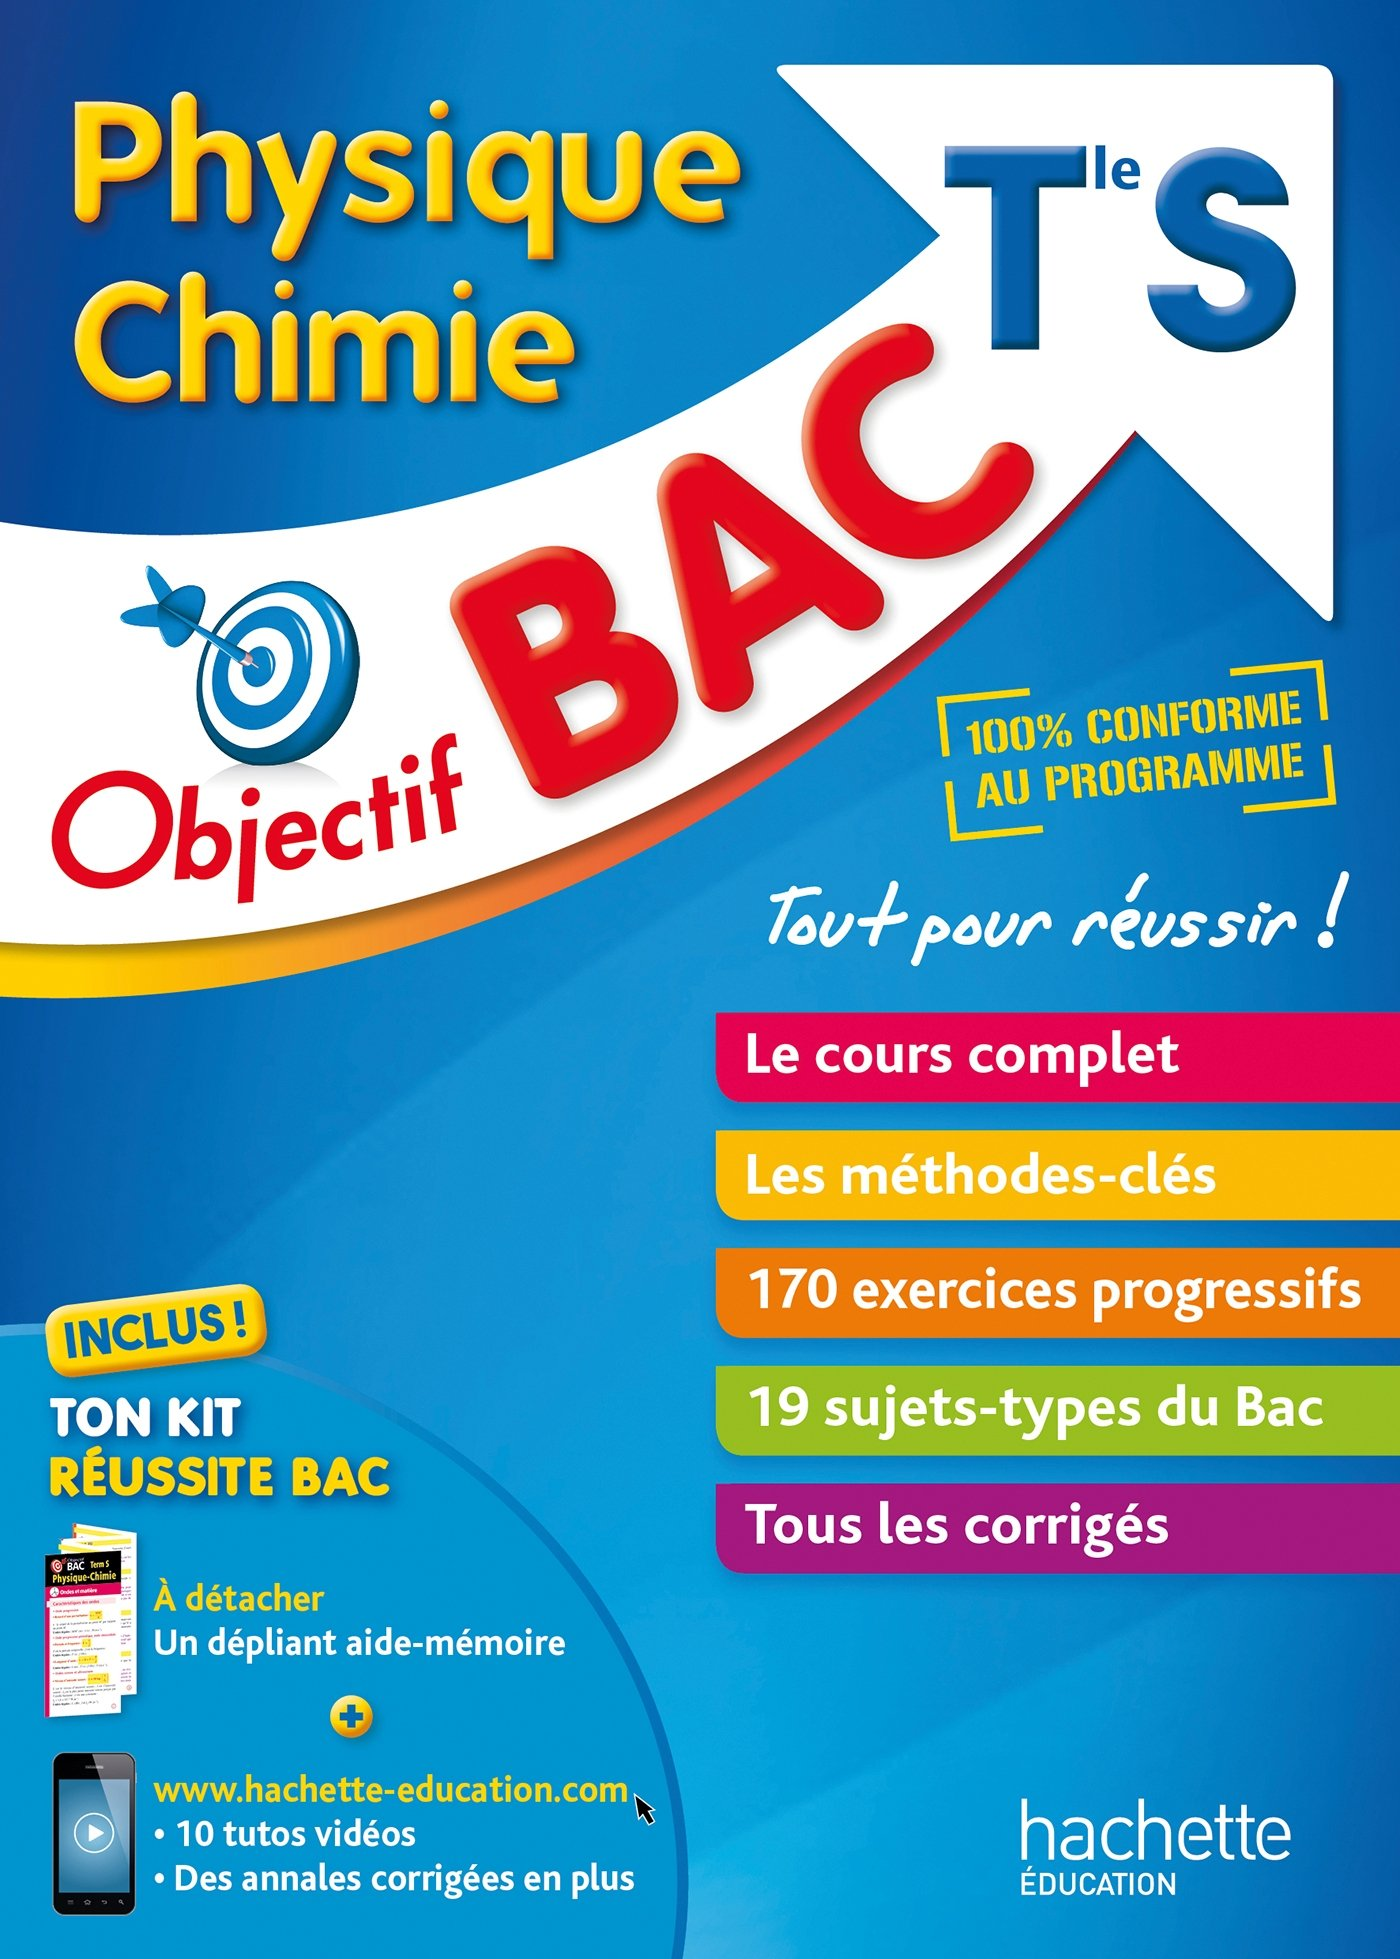 Physique Chimie Tle S (French) Paperback – June 28, 2017